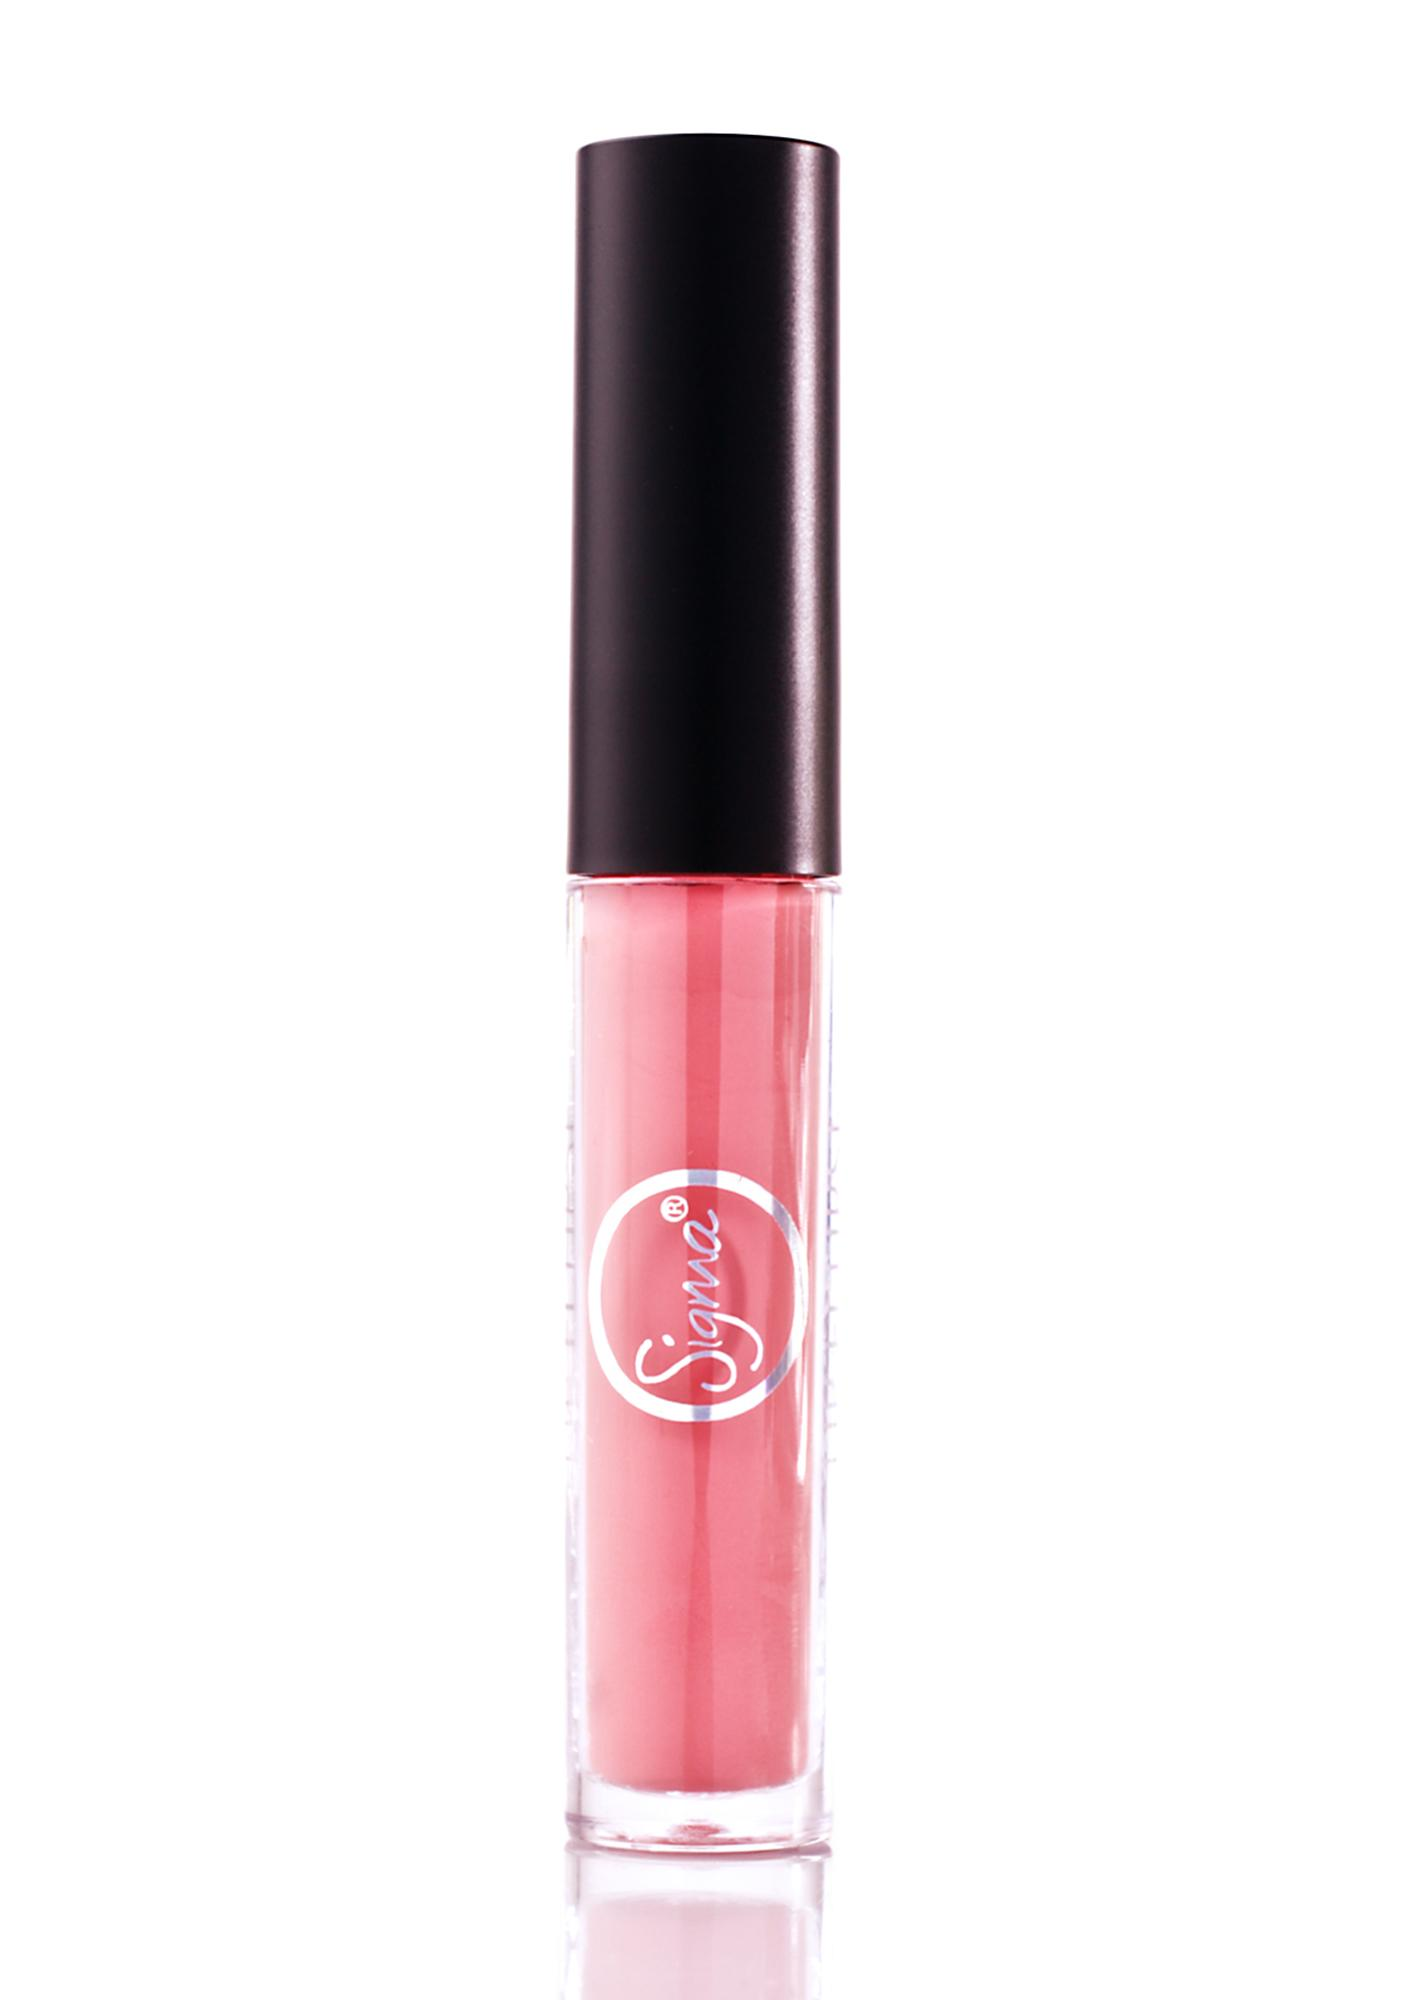 Sigma Rosette Lip Eclipse Gloss